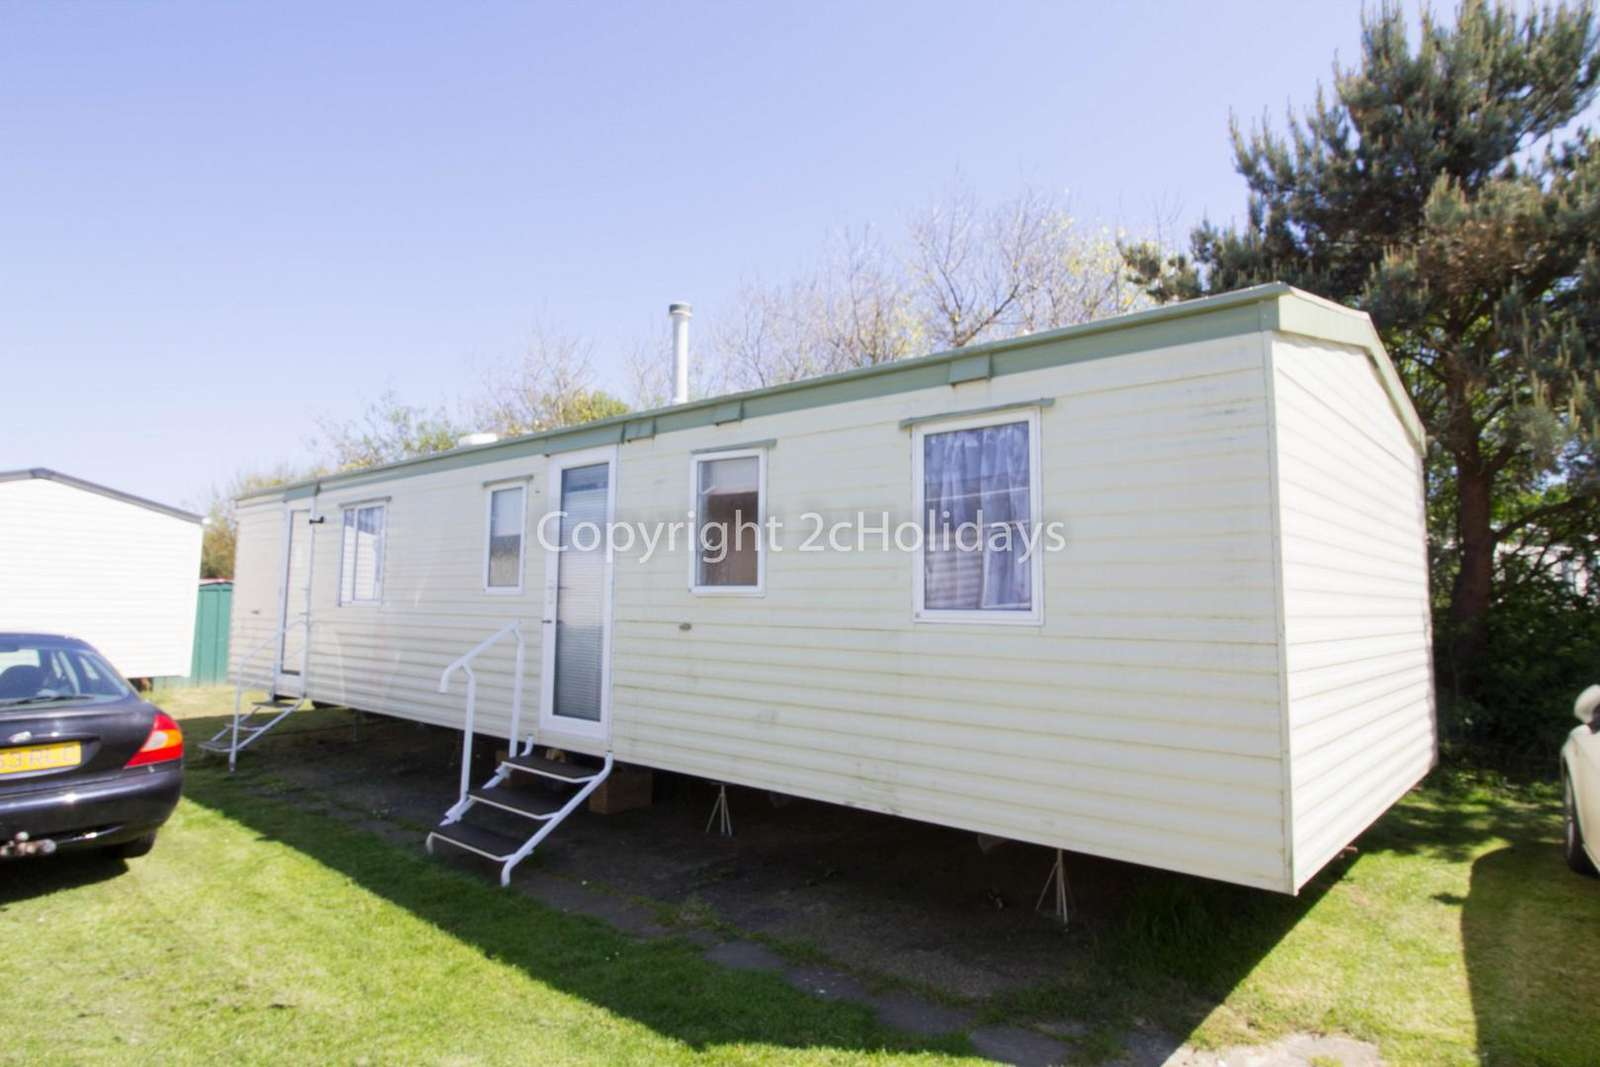 So many families have enjoyed a great break at Broadland Sands Holiday Park. - property